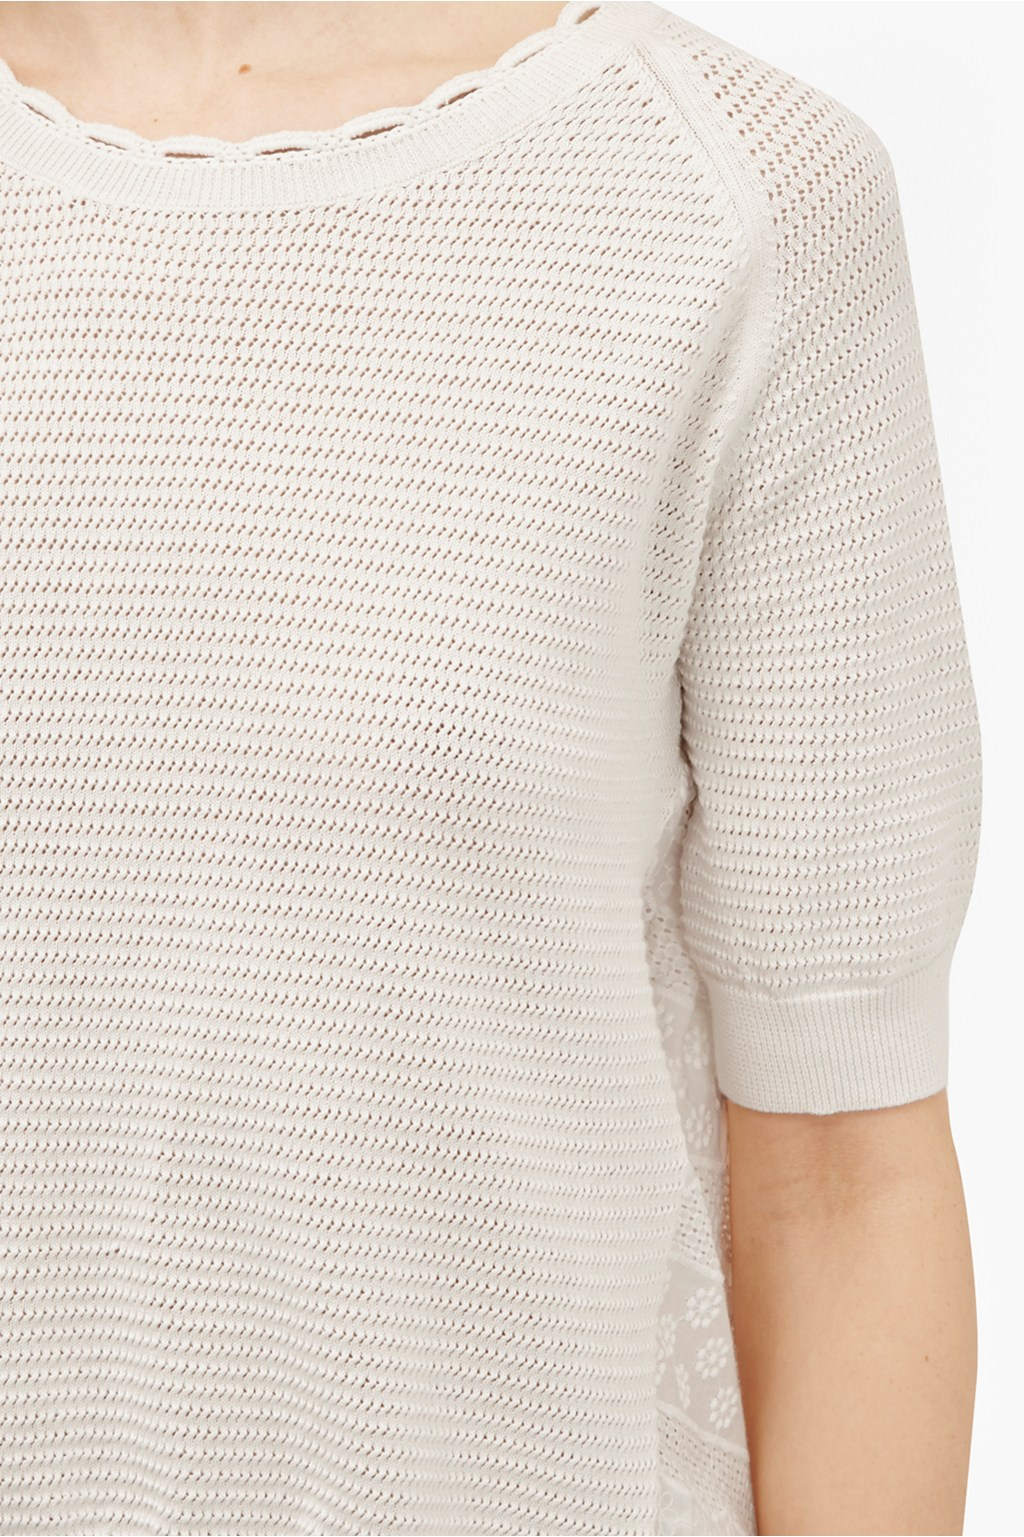 53297589c9068f loading images... loading images... Celia Scallop Knitted Jumper